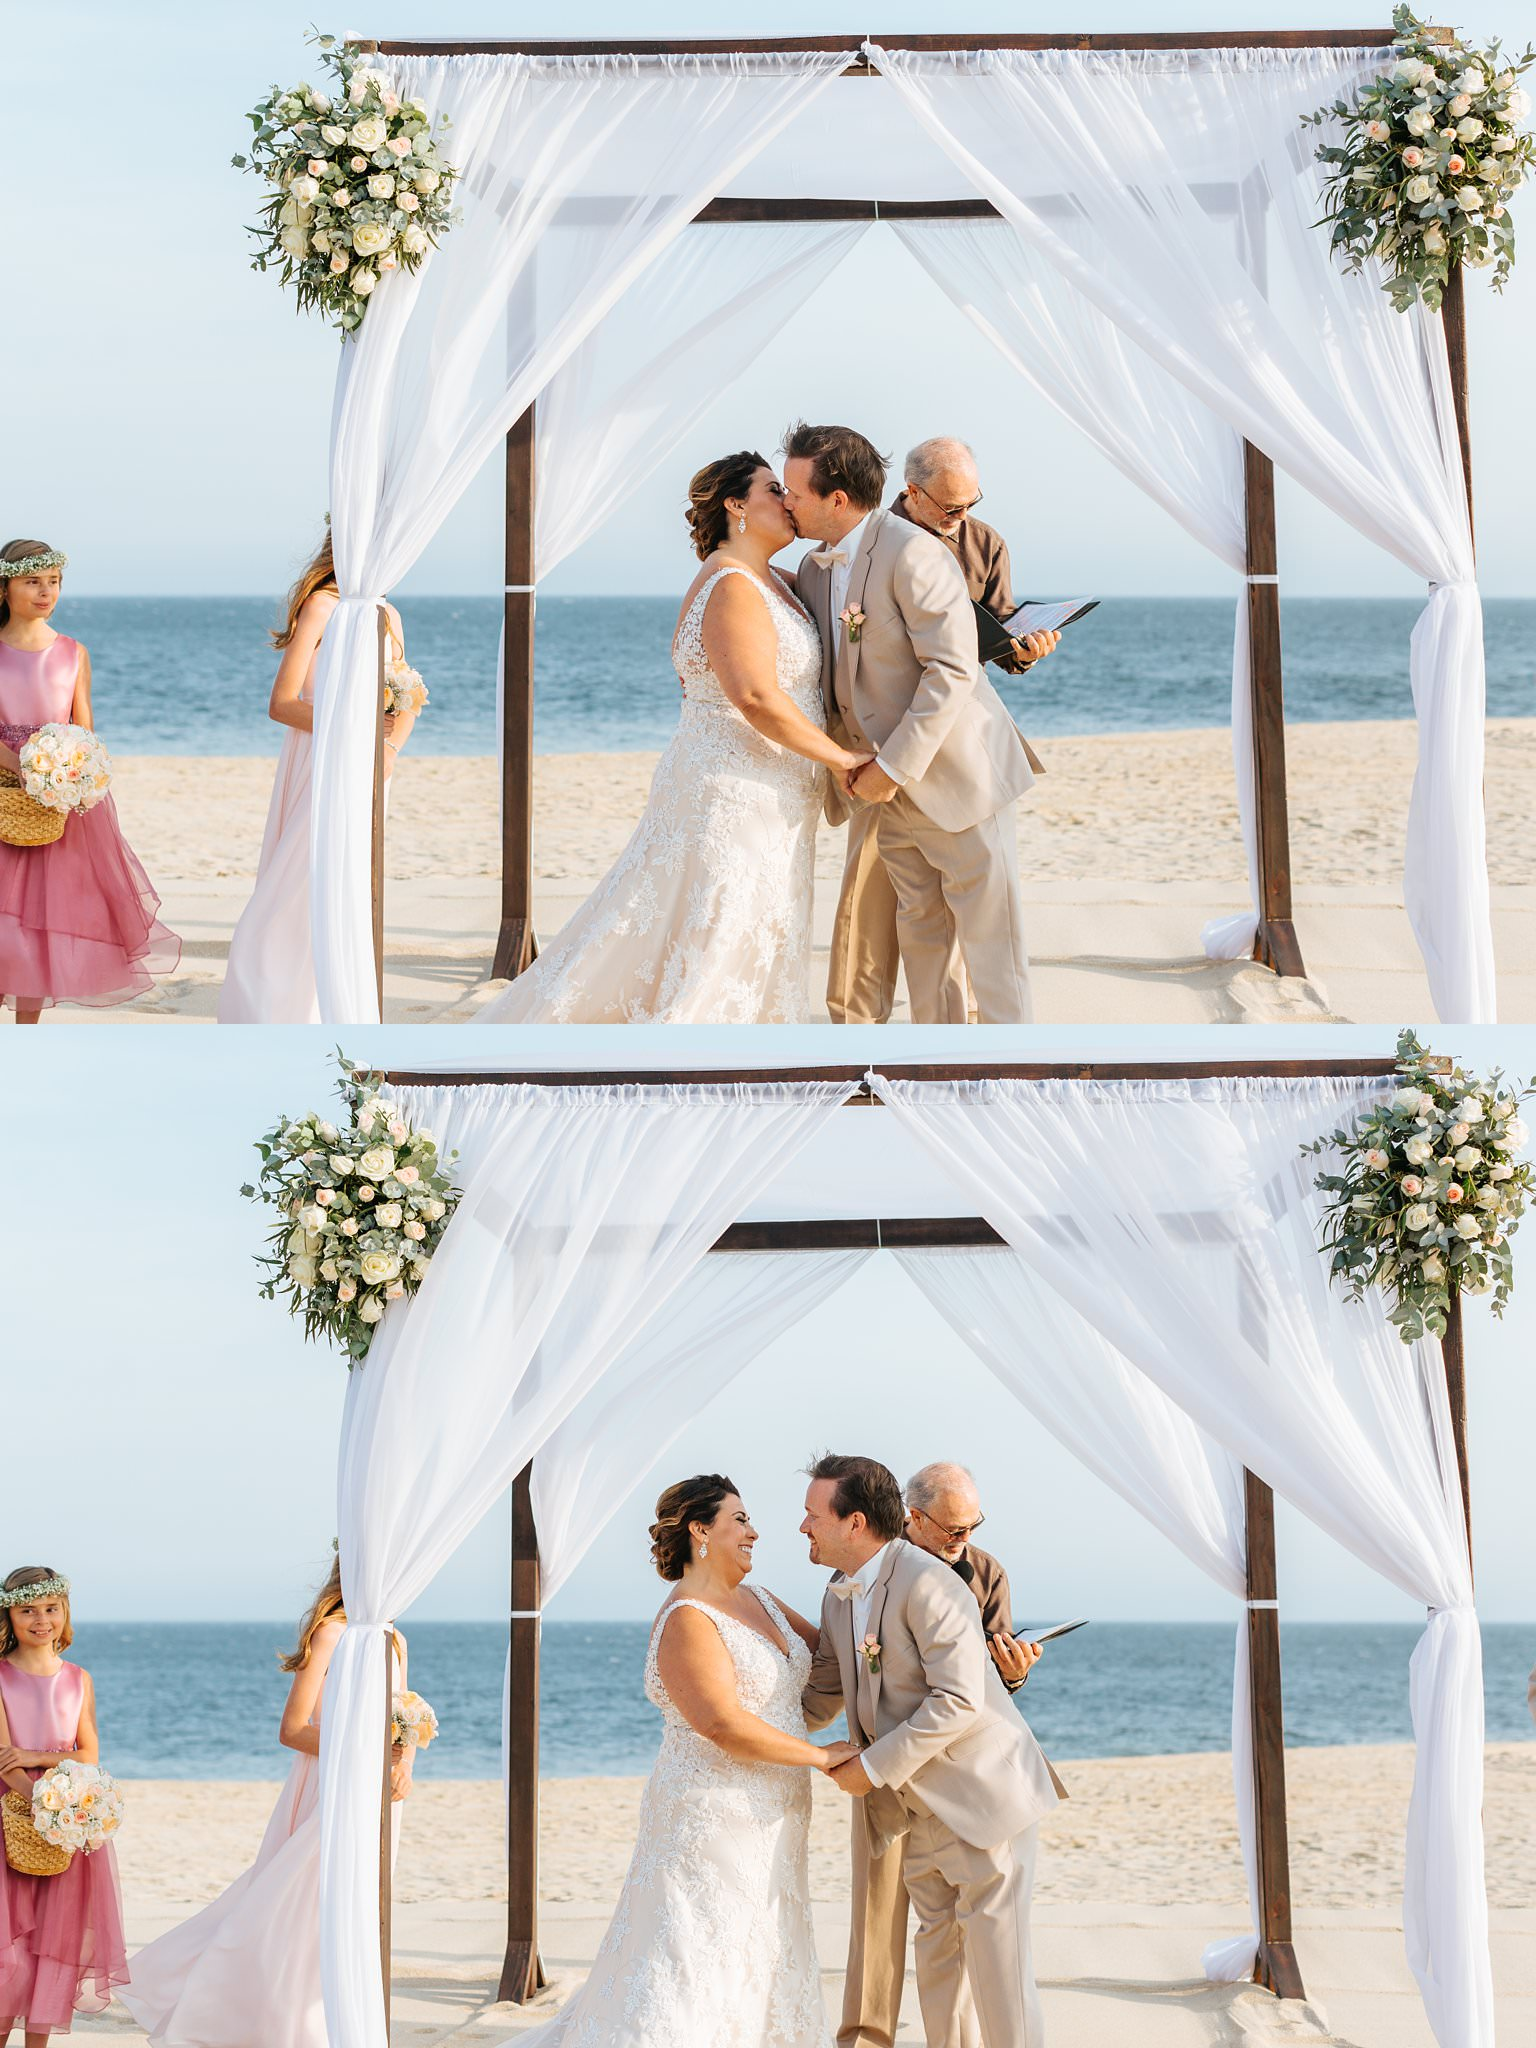 Husband and Wife - Wedding Ceremony on the beach in Cabo - https://brittneyhannonphotography.com